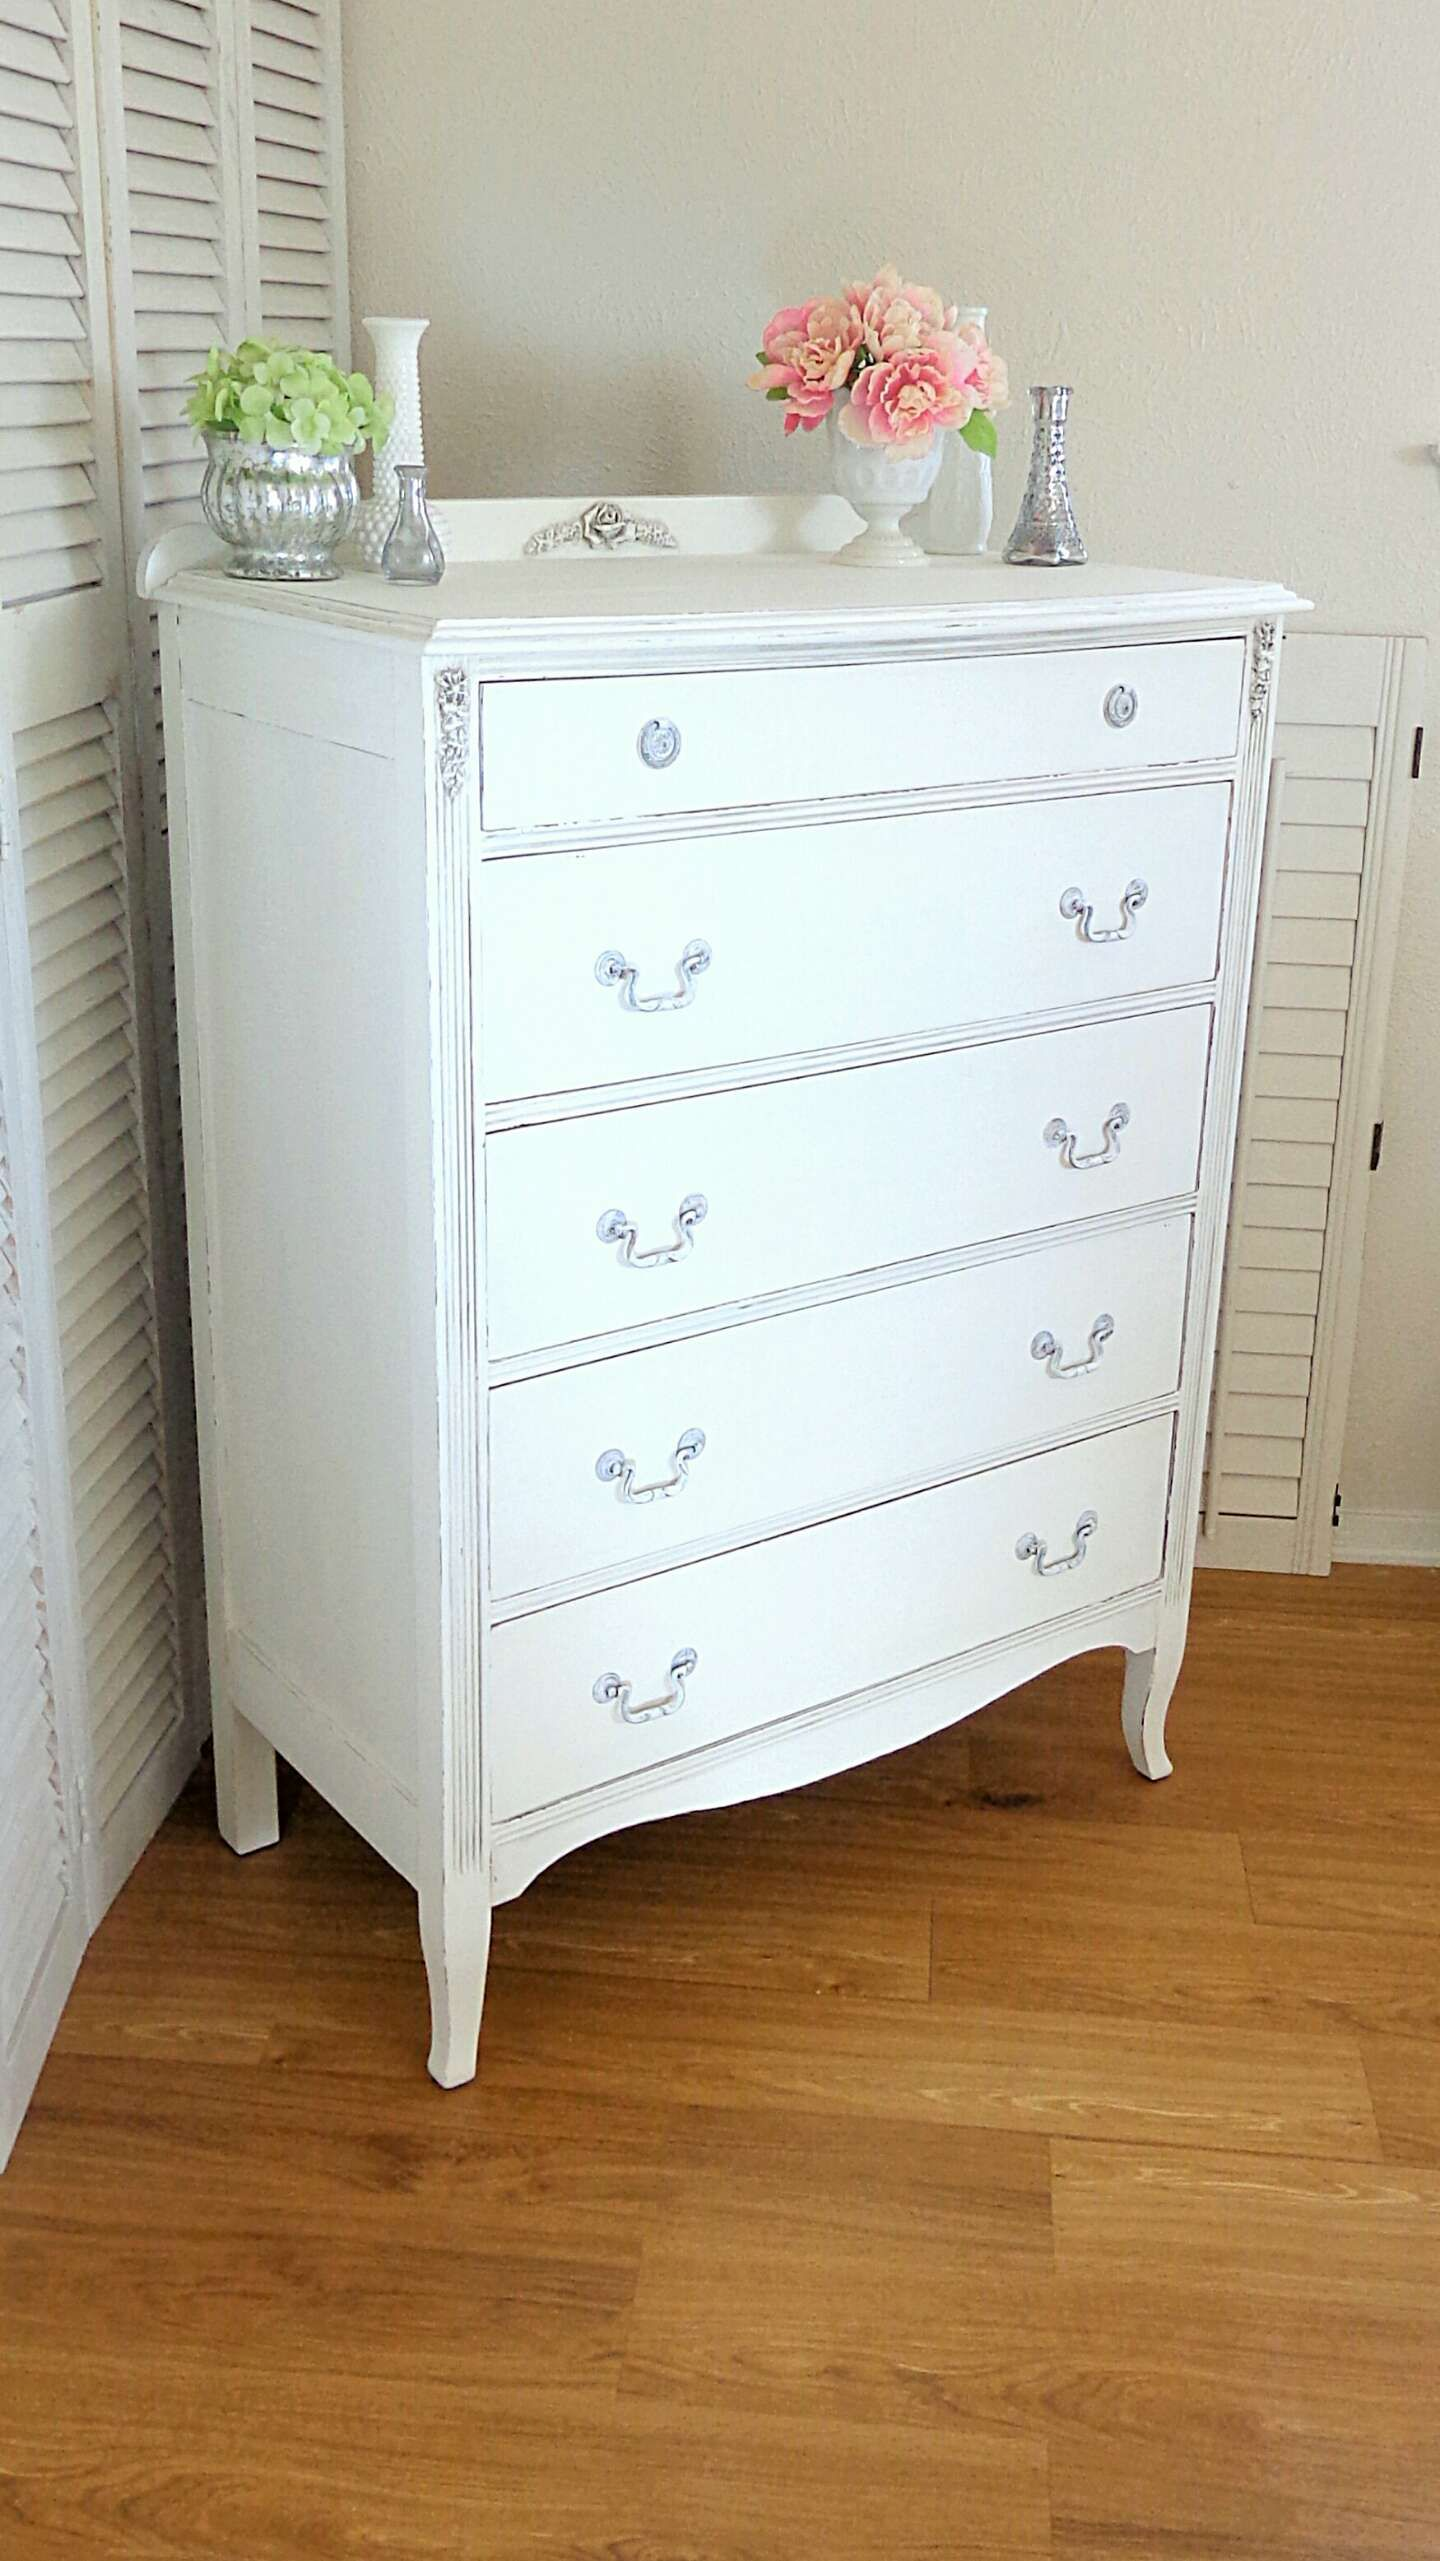 Romantic French Country Style Dresser In Antique White Vintage Mahogany Chest Of Drawers By Christine Brandon White Dresser Shabby Chic Decor Painted Cottage [ 2561 x 1440 Pixel ]